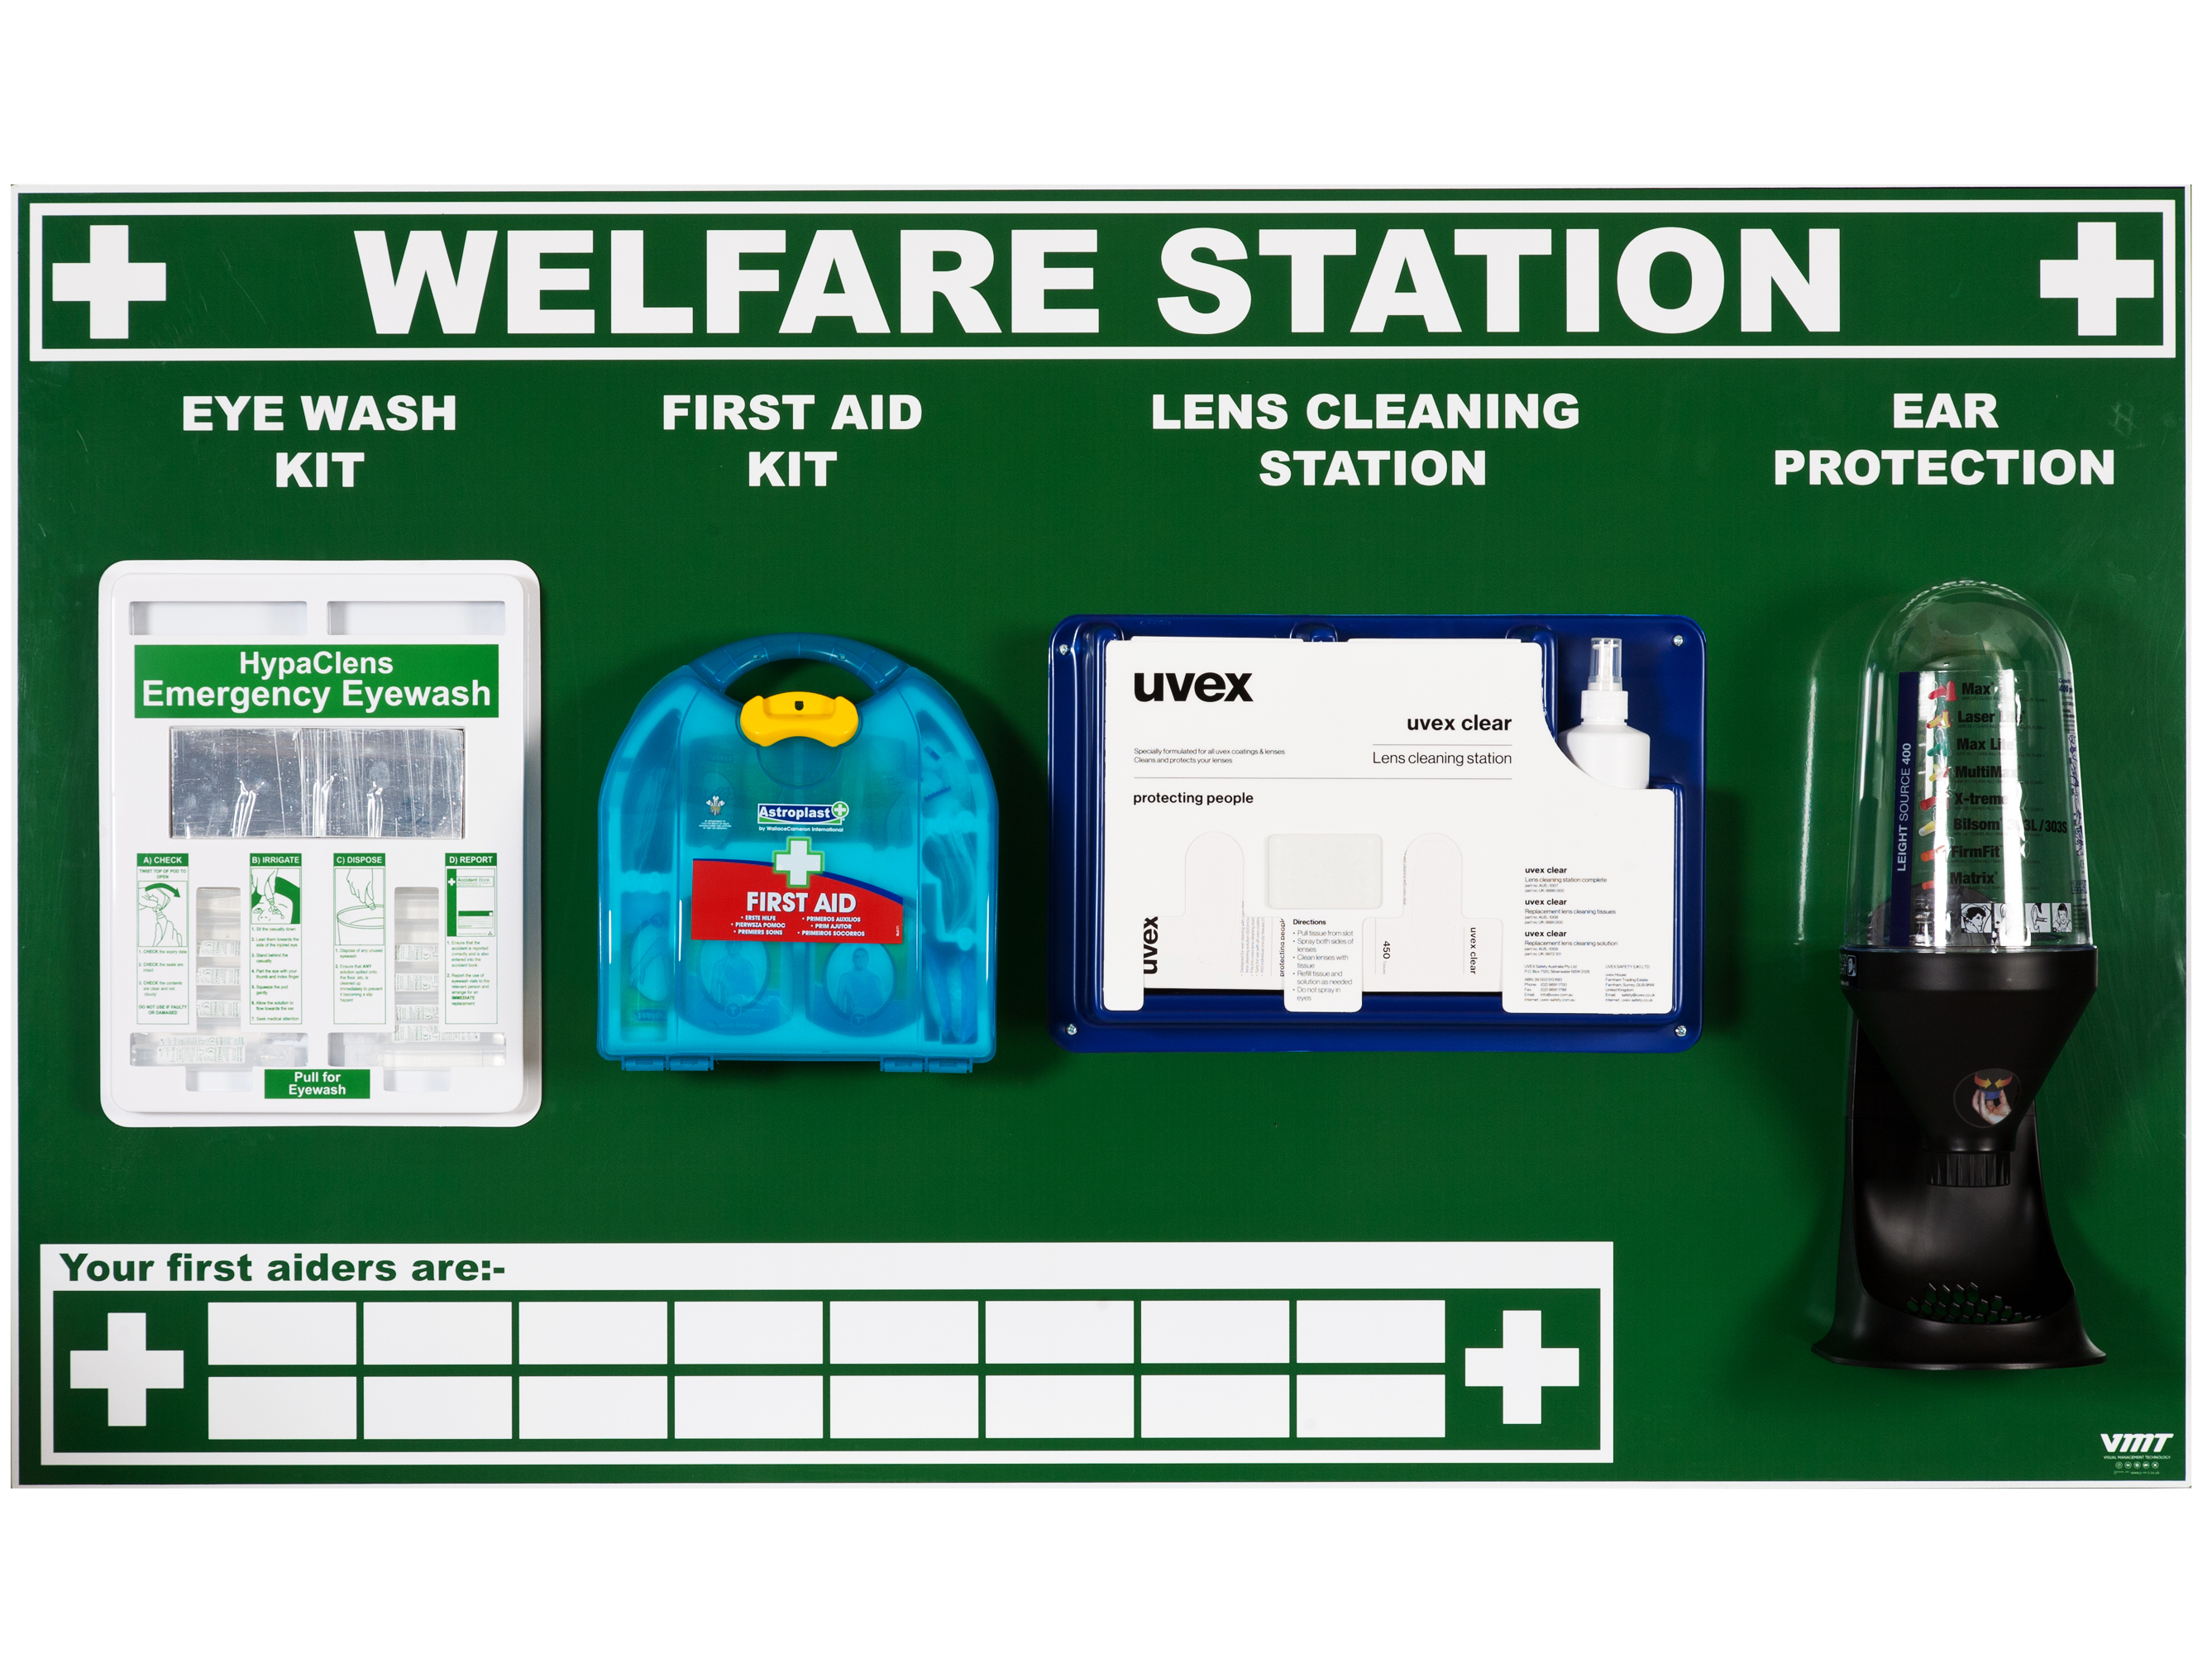 Welfare Station With Eye Wash Kit First Aid Kit Lens Cleaning Station And Ear Protection